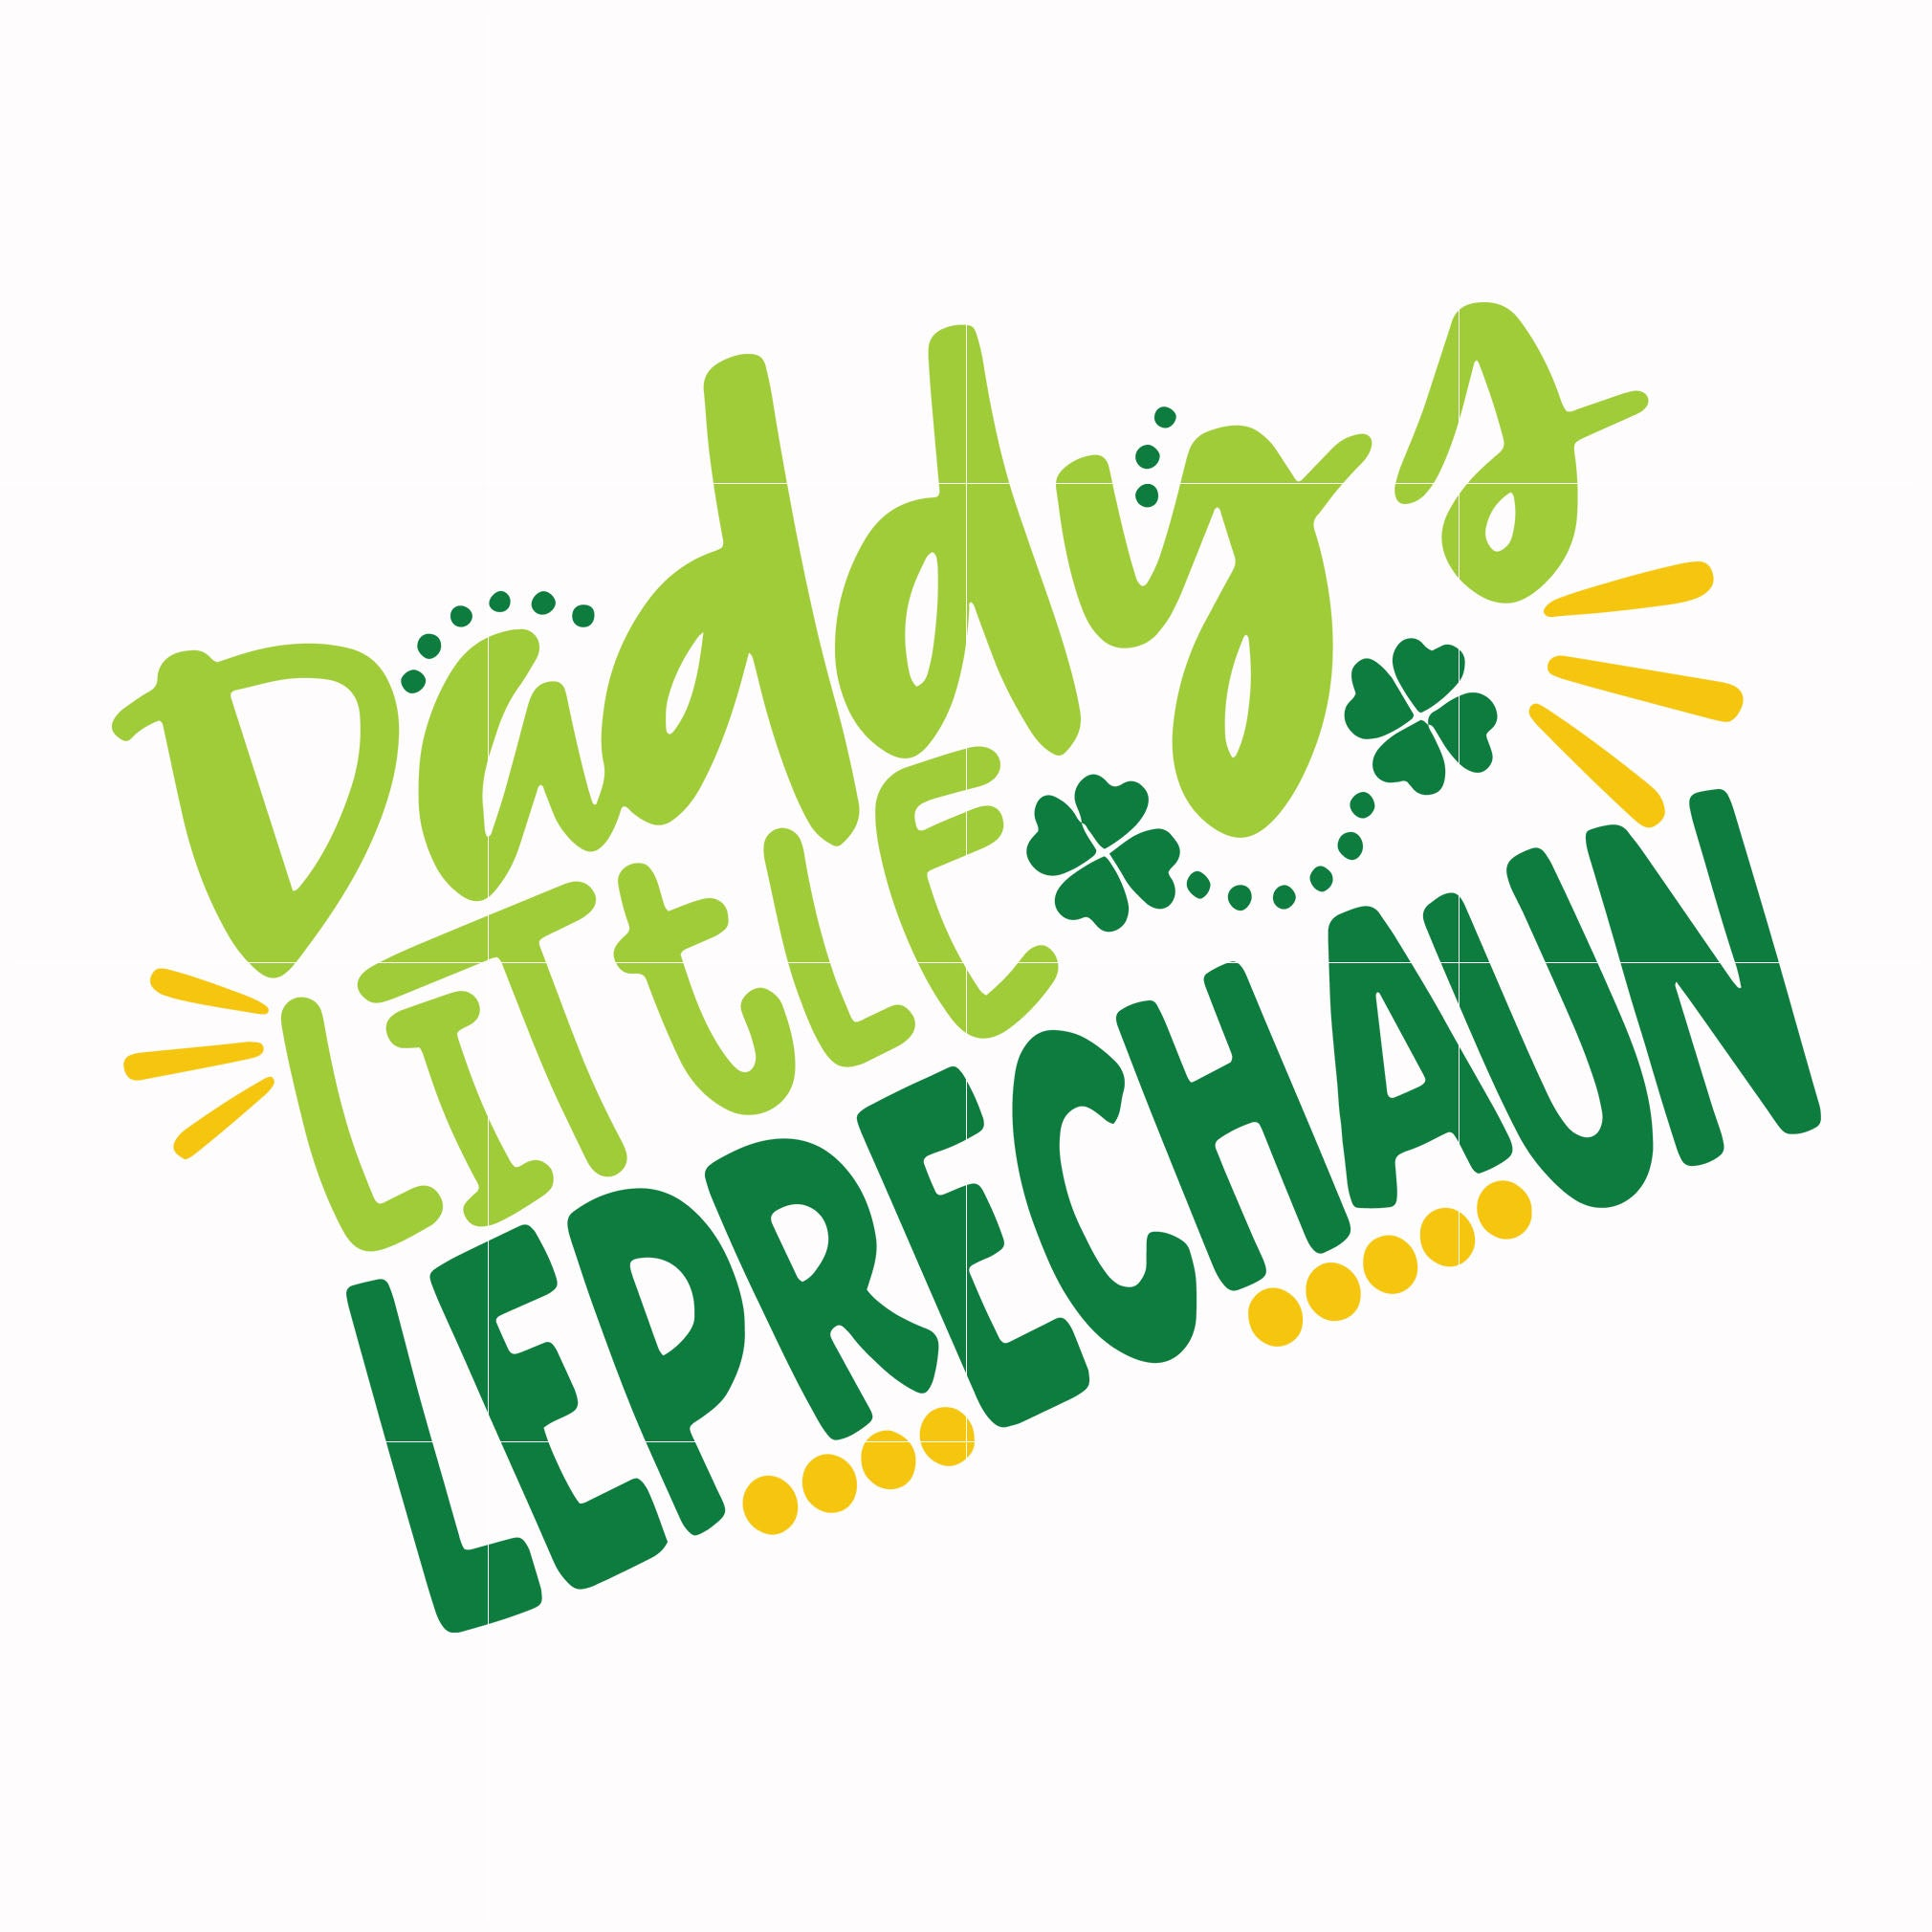 Daddys little leprechaun svg, shamrock svg, st patrick day svg, leprechaun svg, patrick svg, leprechaun svg, dxf, eps, png digital file